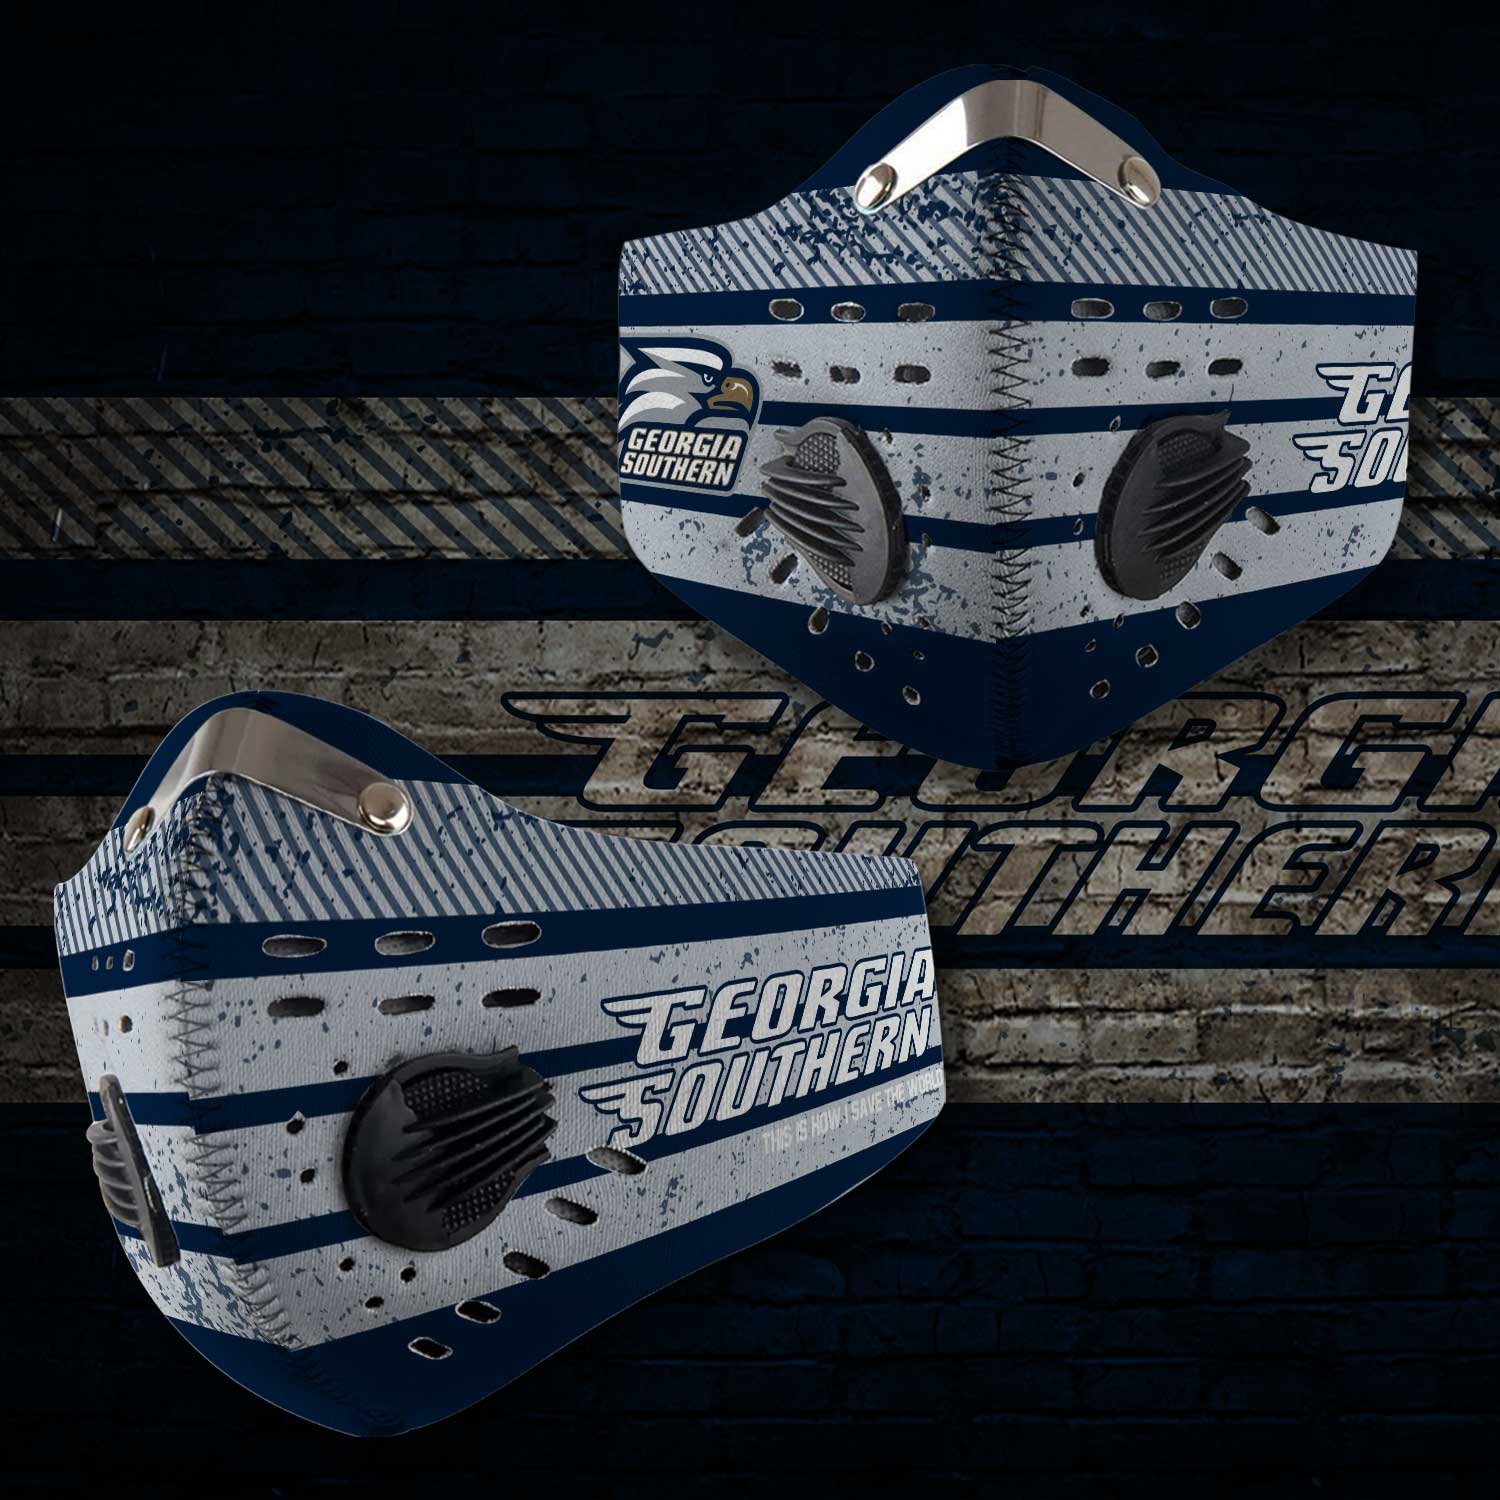 Georgia southern eagles football this is how i save the world face mask 2